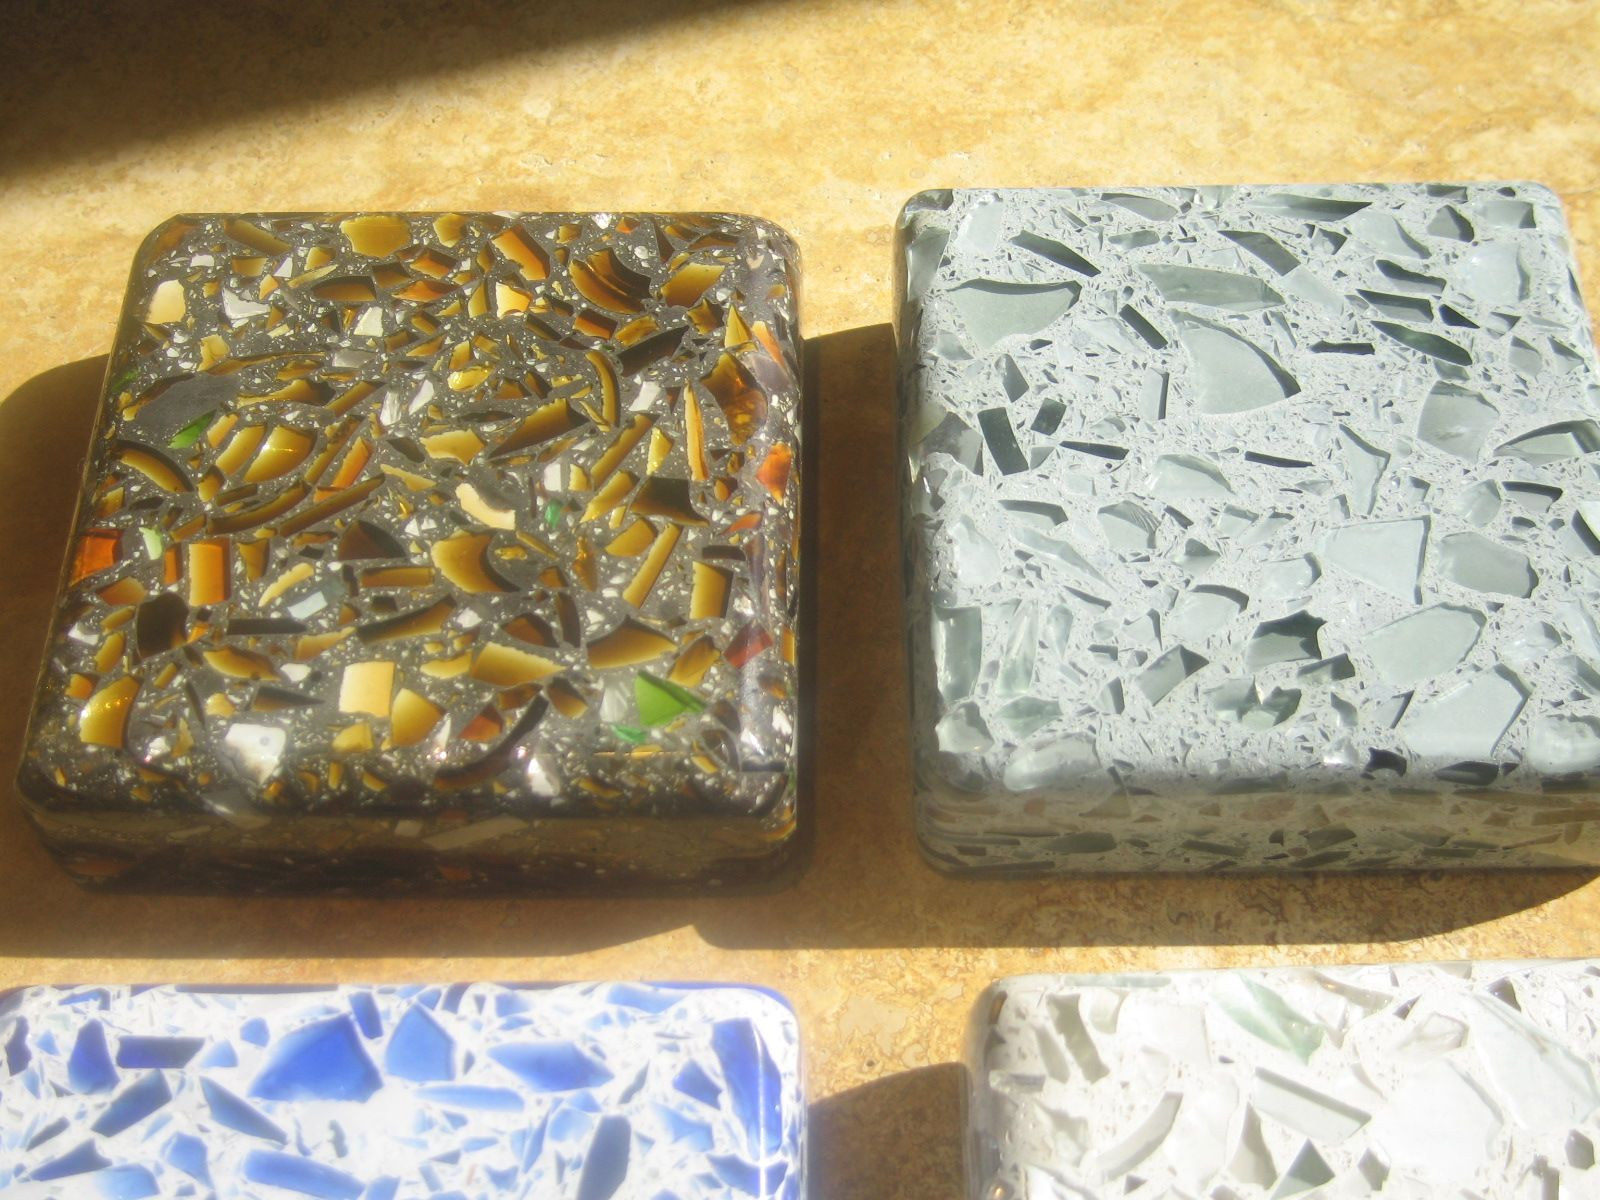 Countertop Materials Recycled : recycled glass countertops remodel ideas Pinterest